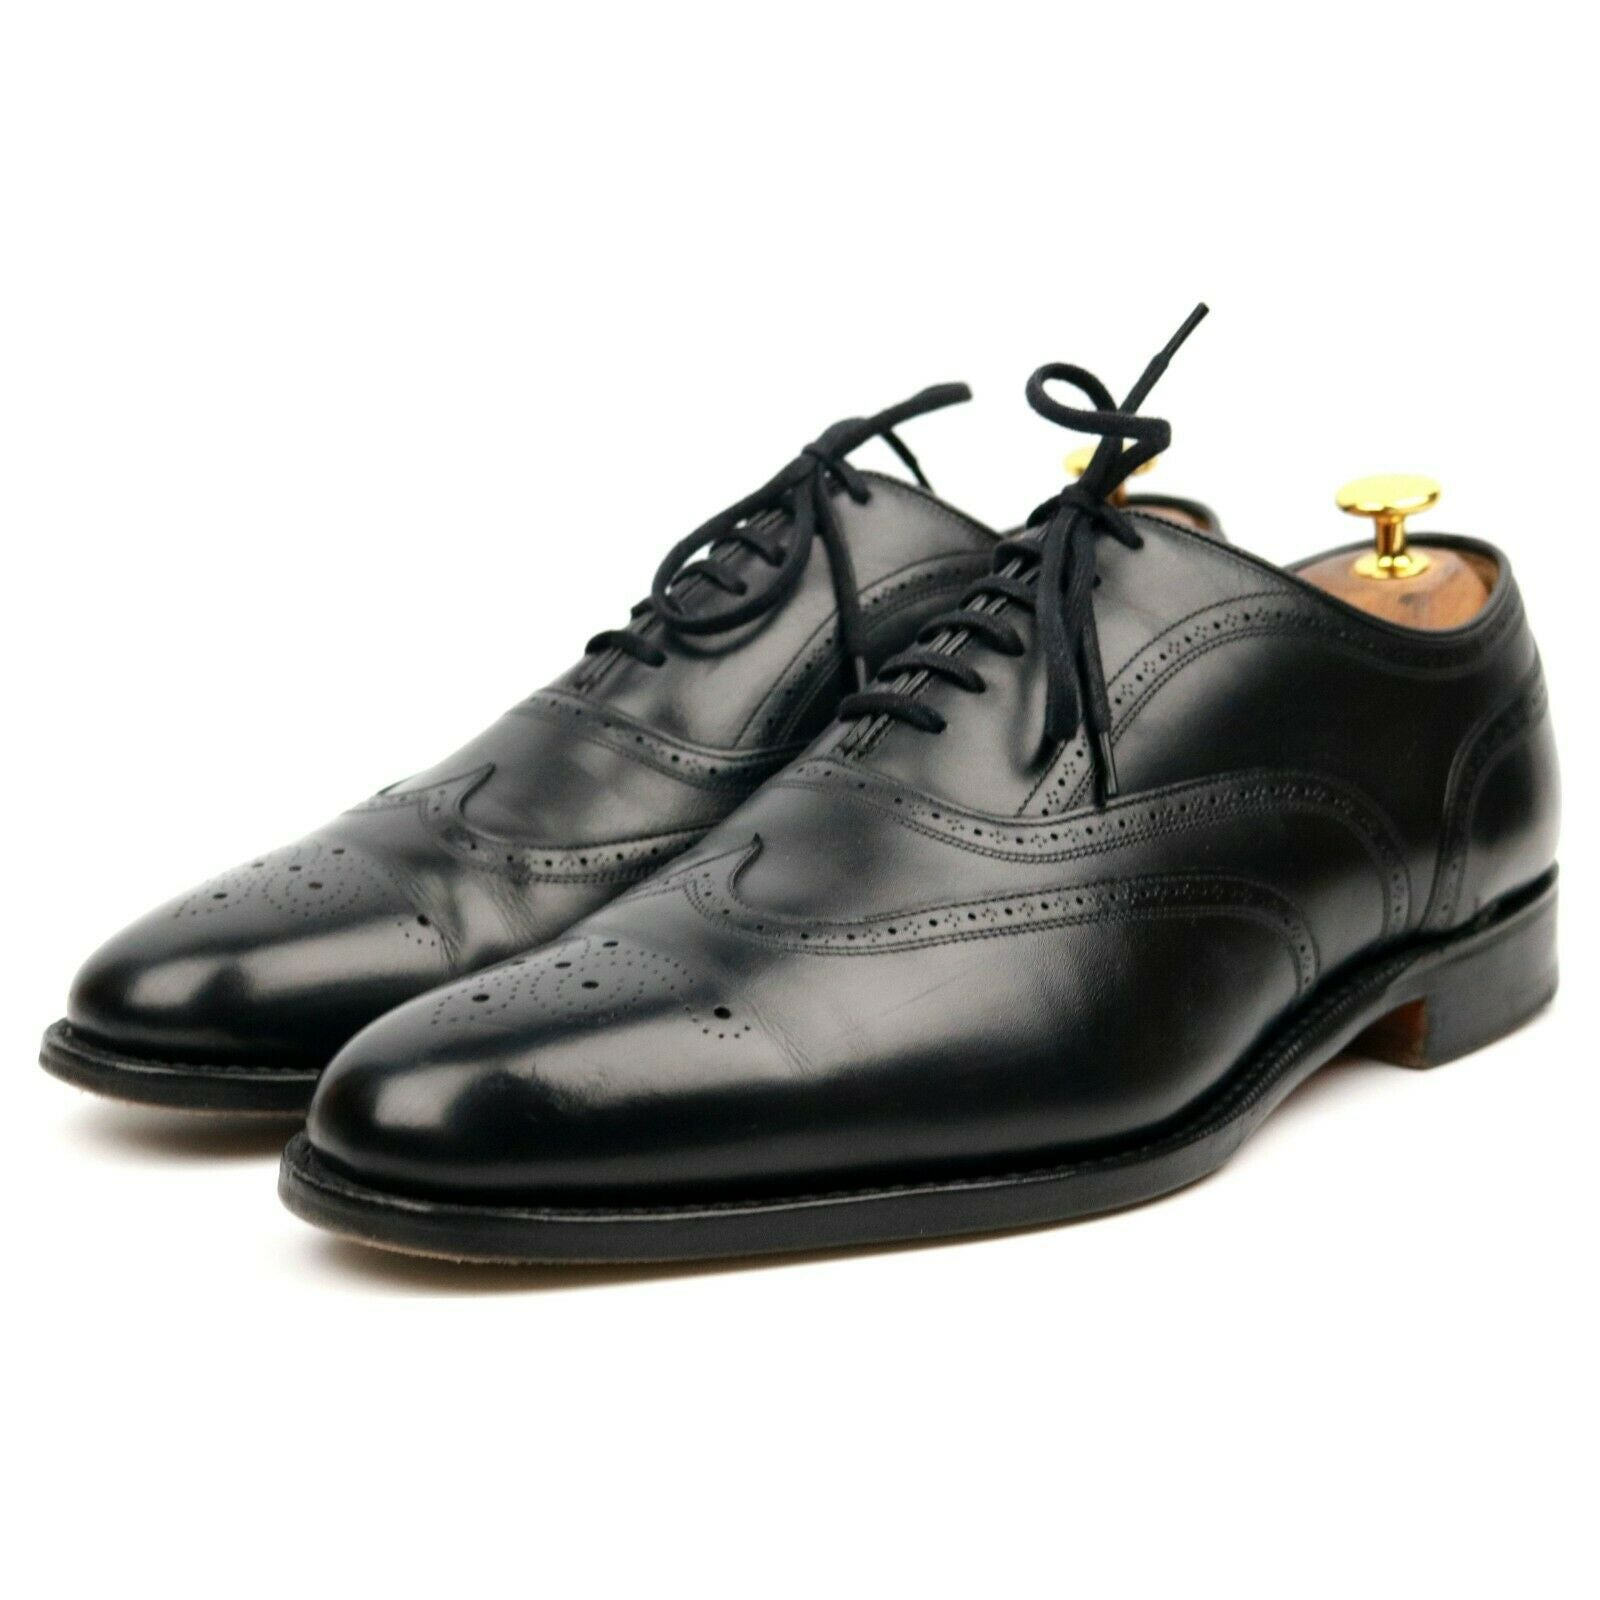 Church's 'Longton' Black Leather Brogues UK 8.5 F